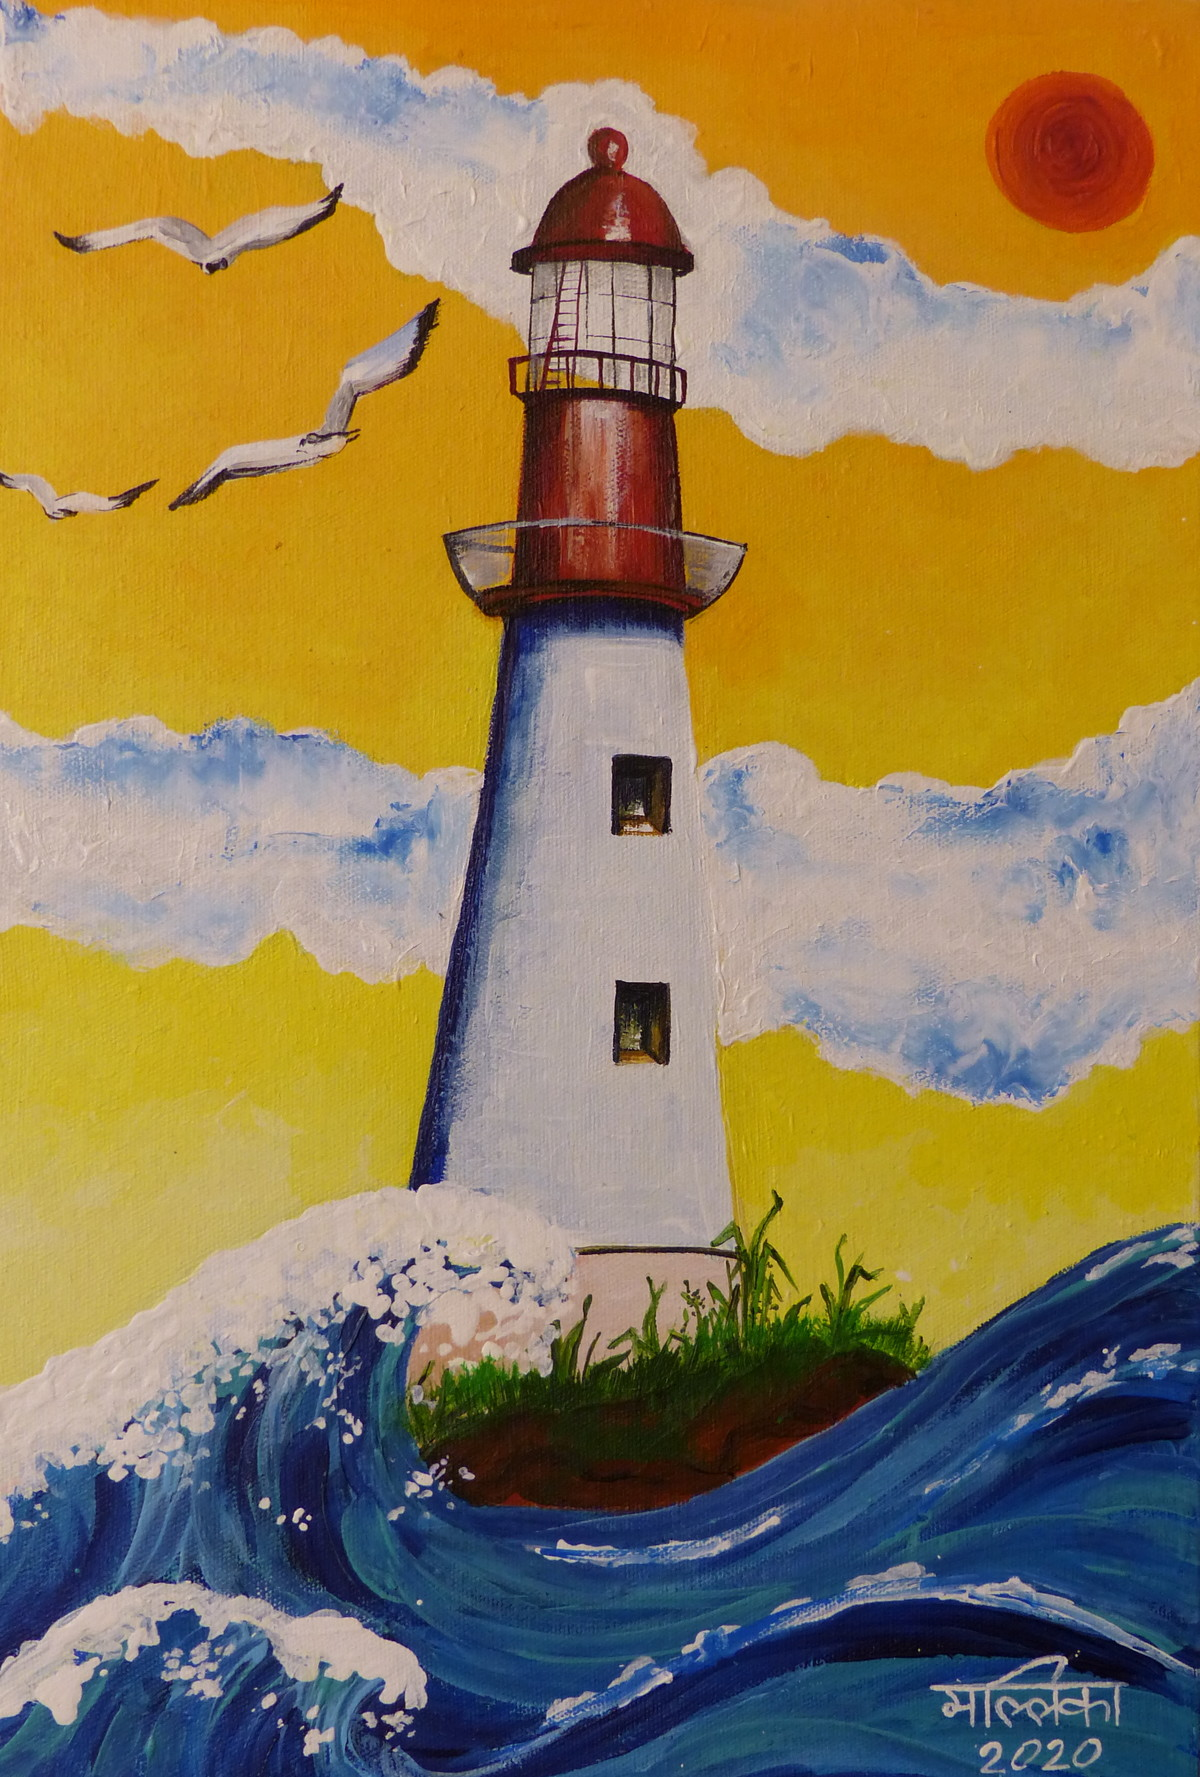 The Lighthouse Digital Print by Mallika Seth,Expressionism